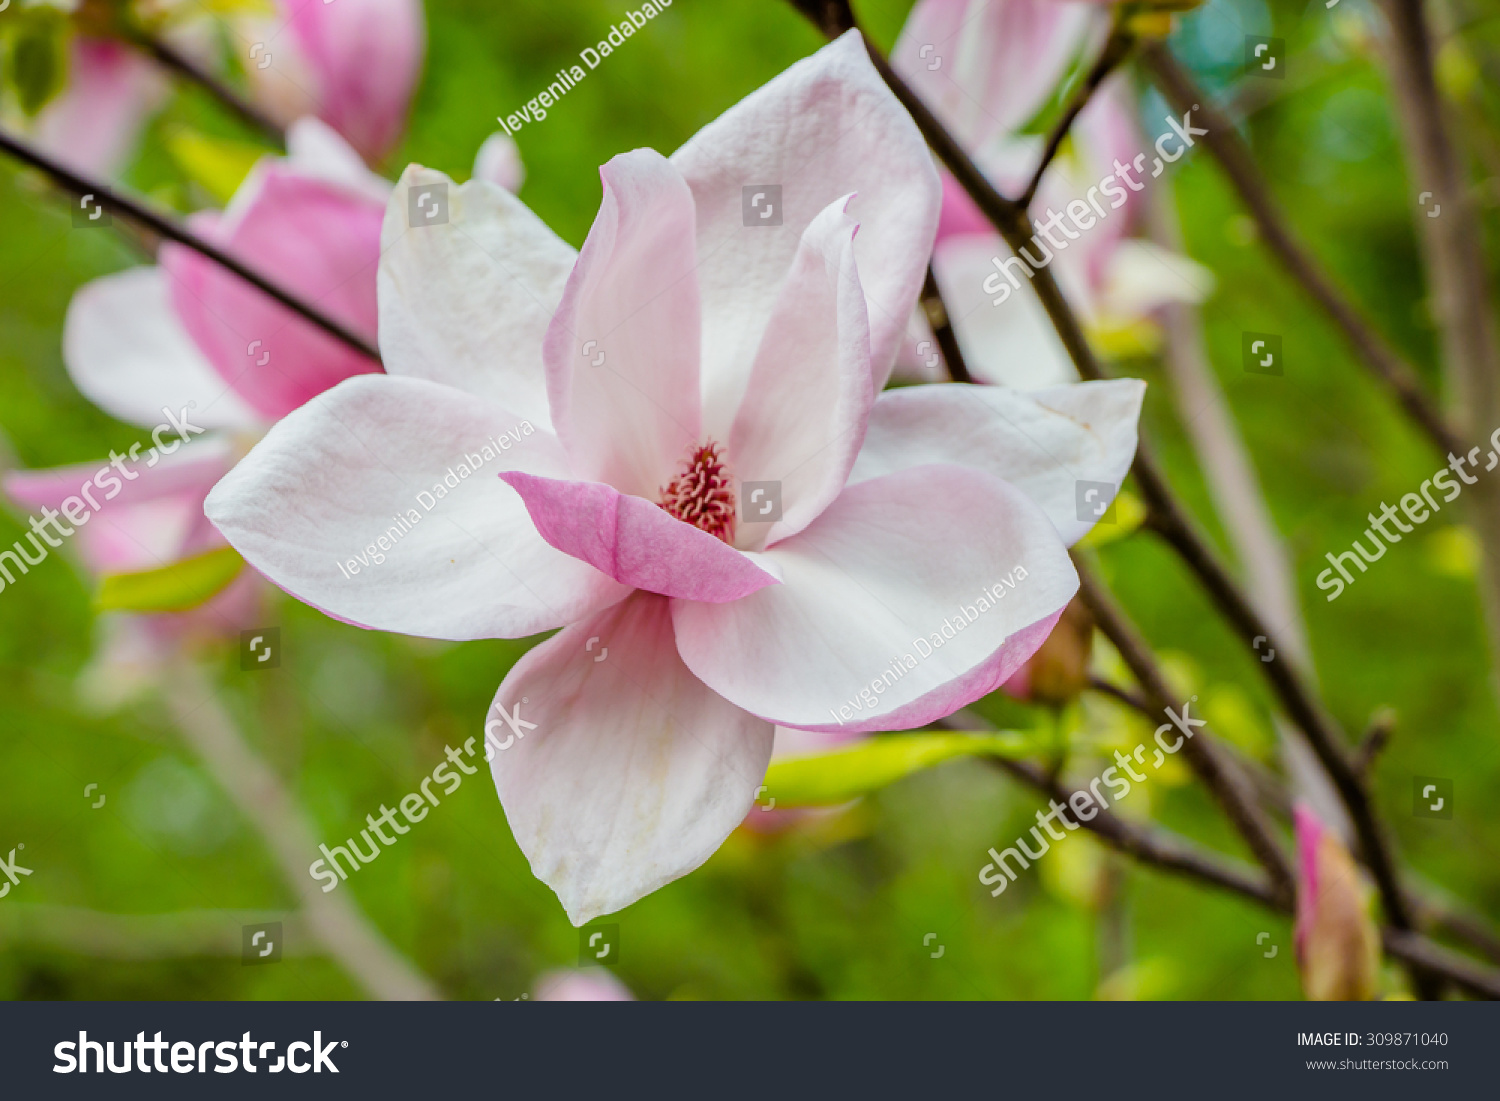 Magnolia Flowerbouquet Magnolia Stock Photo 309871040 - Shutterstock